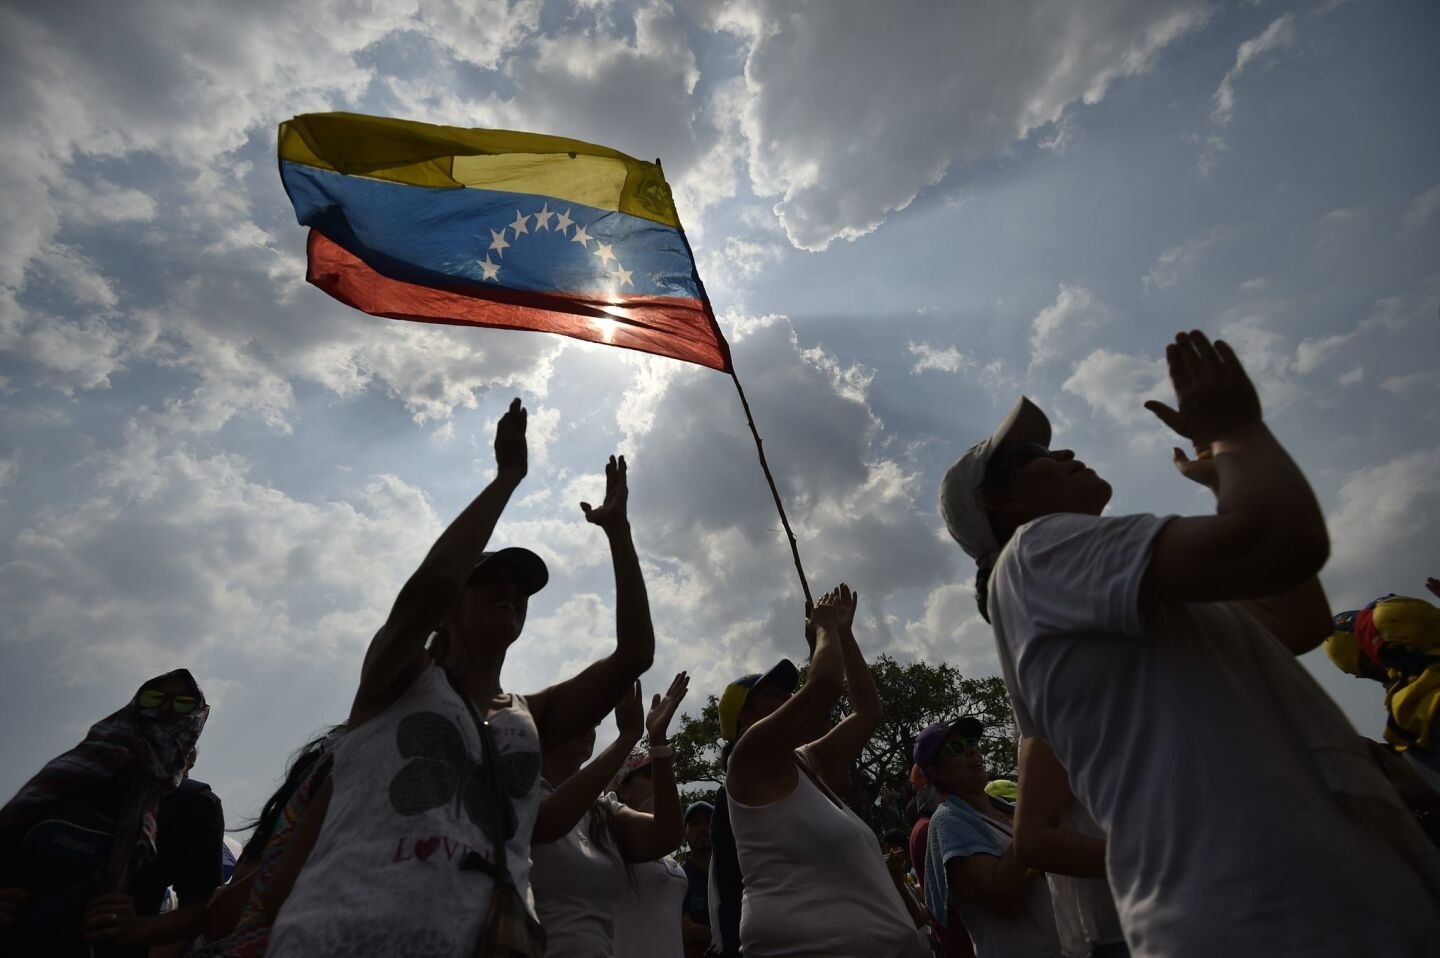 "People attend ""Venezuela Aid Live"" concert, organized to raise money for the Venezuelan relief effort at Tienditas International Bridge in Cucuta, Colombia, on February 22, 2019. - Venezuela's political tug-of-war morphs into a battle of the bands on Friday, with dueling government and opposition pop concerts ahead of a weekend showdown over the entry of badly needed food and medical aid. (Photo by Luis ROBAYO / AFP)LUIS ROBAYO/AFP/Getty Images ** OUTS - ELSENT, FPG, CM - OUTS * NM, PH, VA if sourced by CT, LA or MoD **"